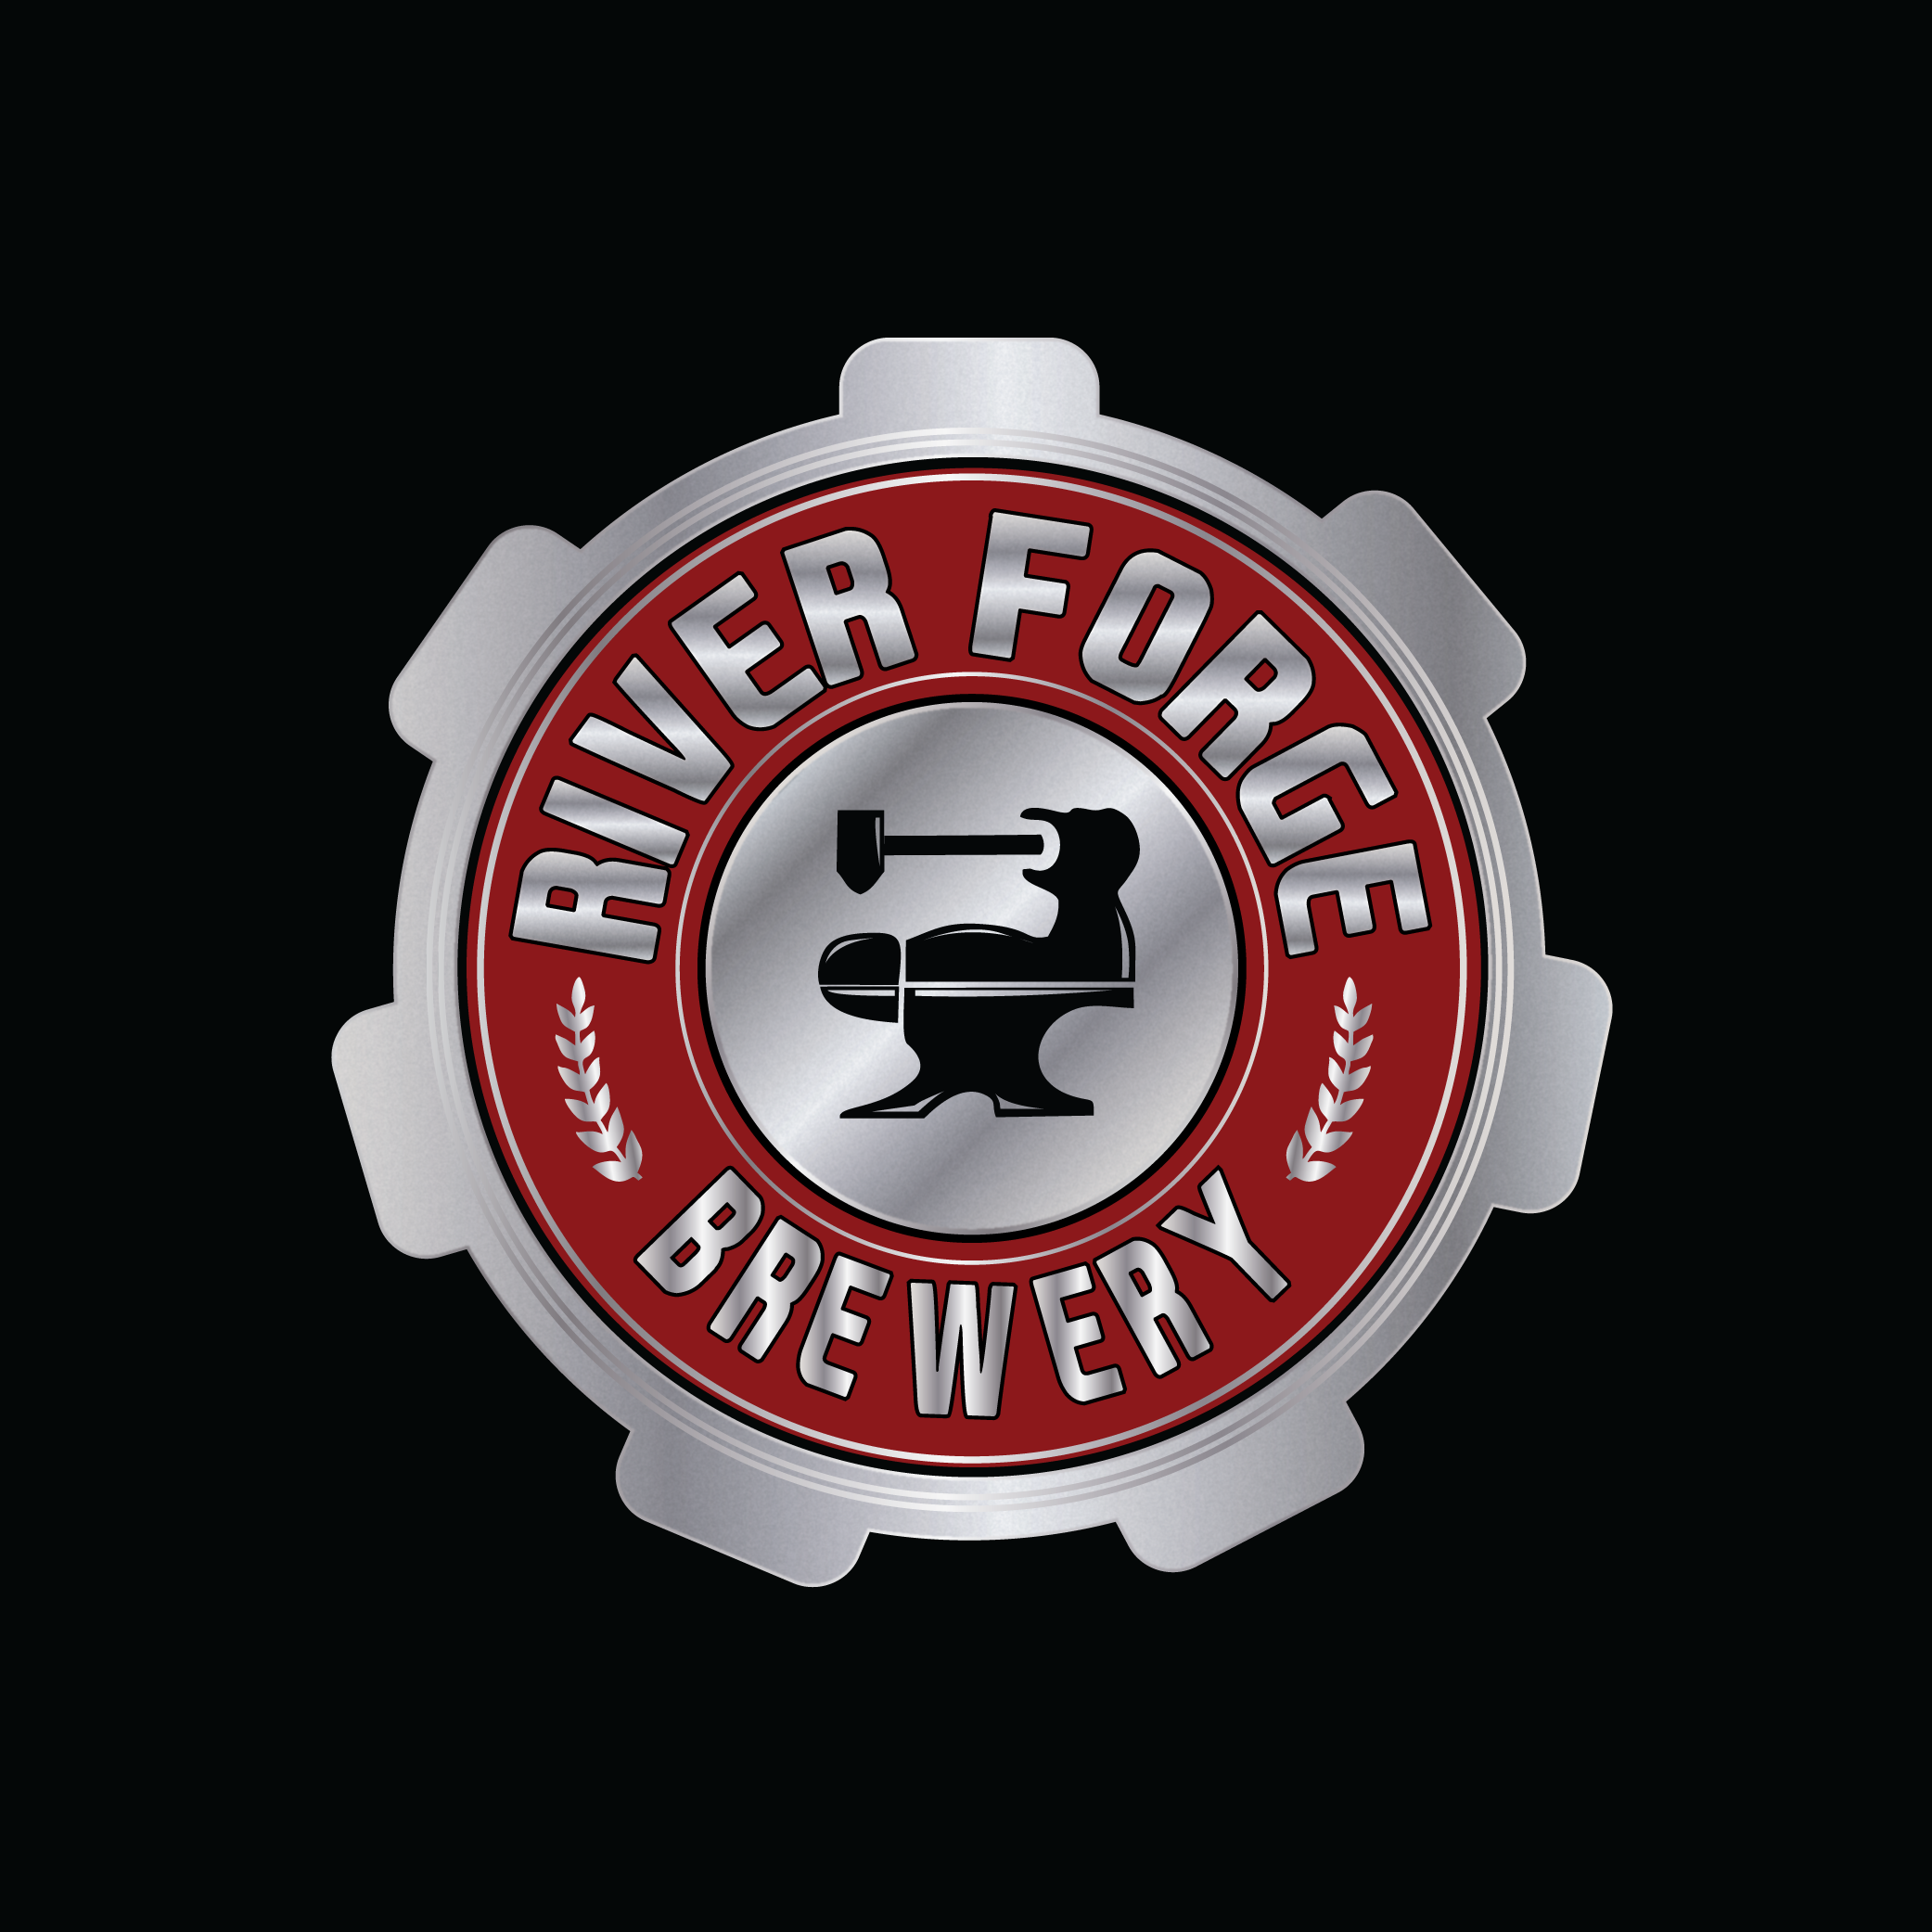 RIVER FORGE BREWERY - design #1775663